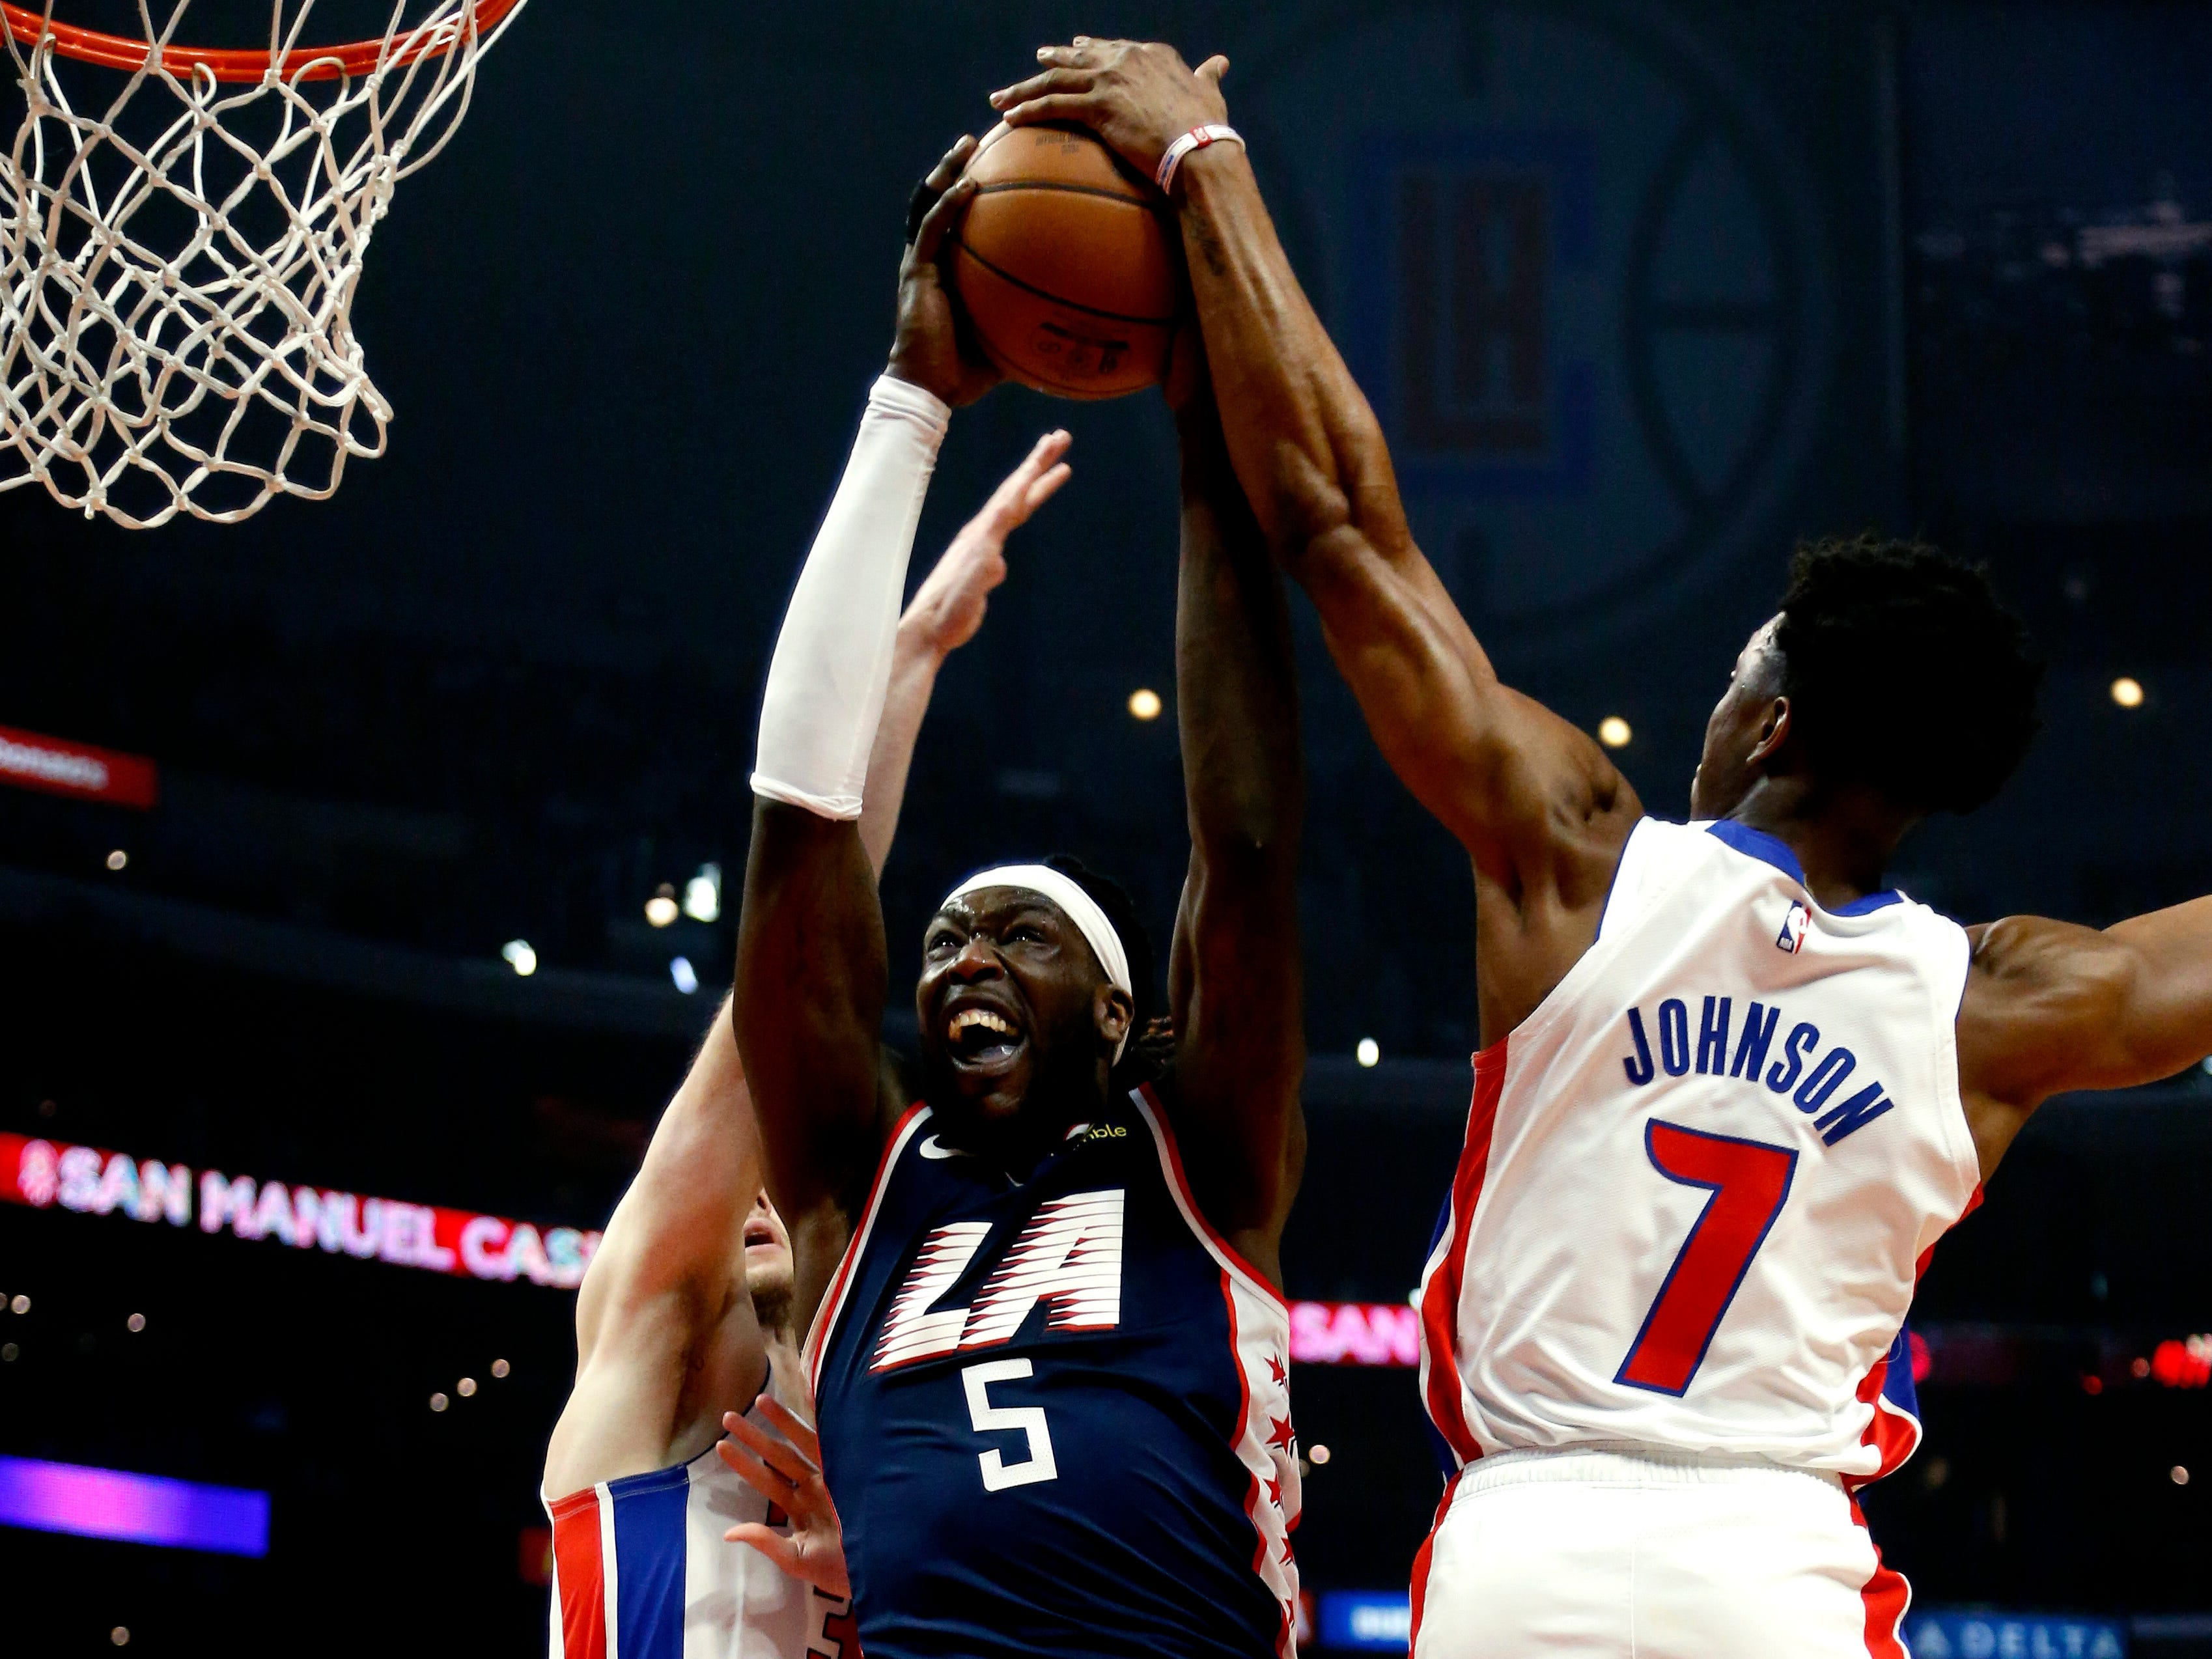 Clippers center Montrezl Harrell goes up to the basket while defended by Pistons forwards Jon Leuer, left, and Stanley Johnson during the first half on Jan. 12, 2019, in Los Angeles.